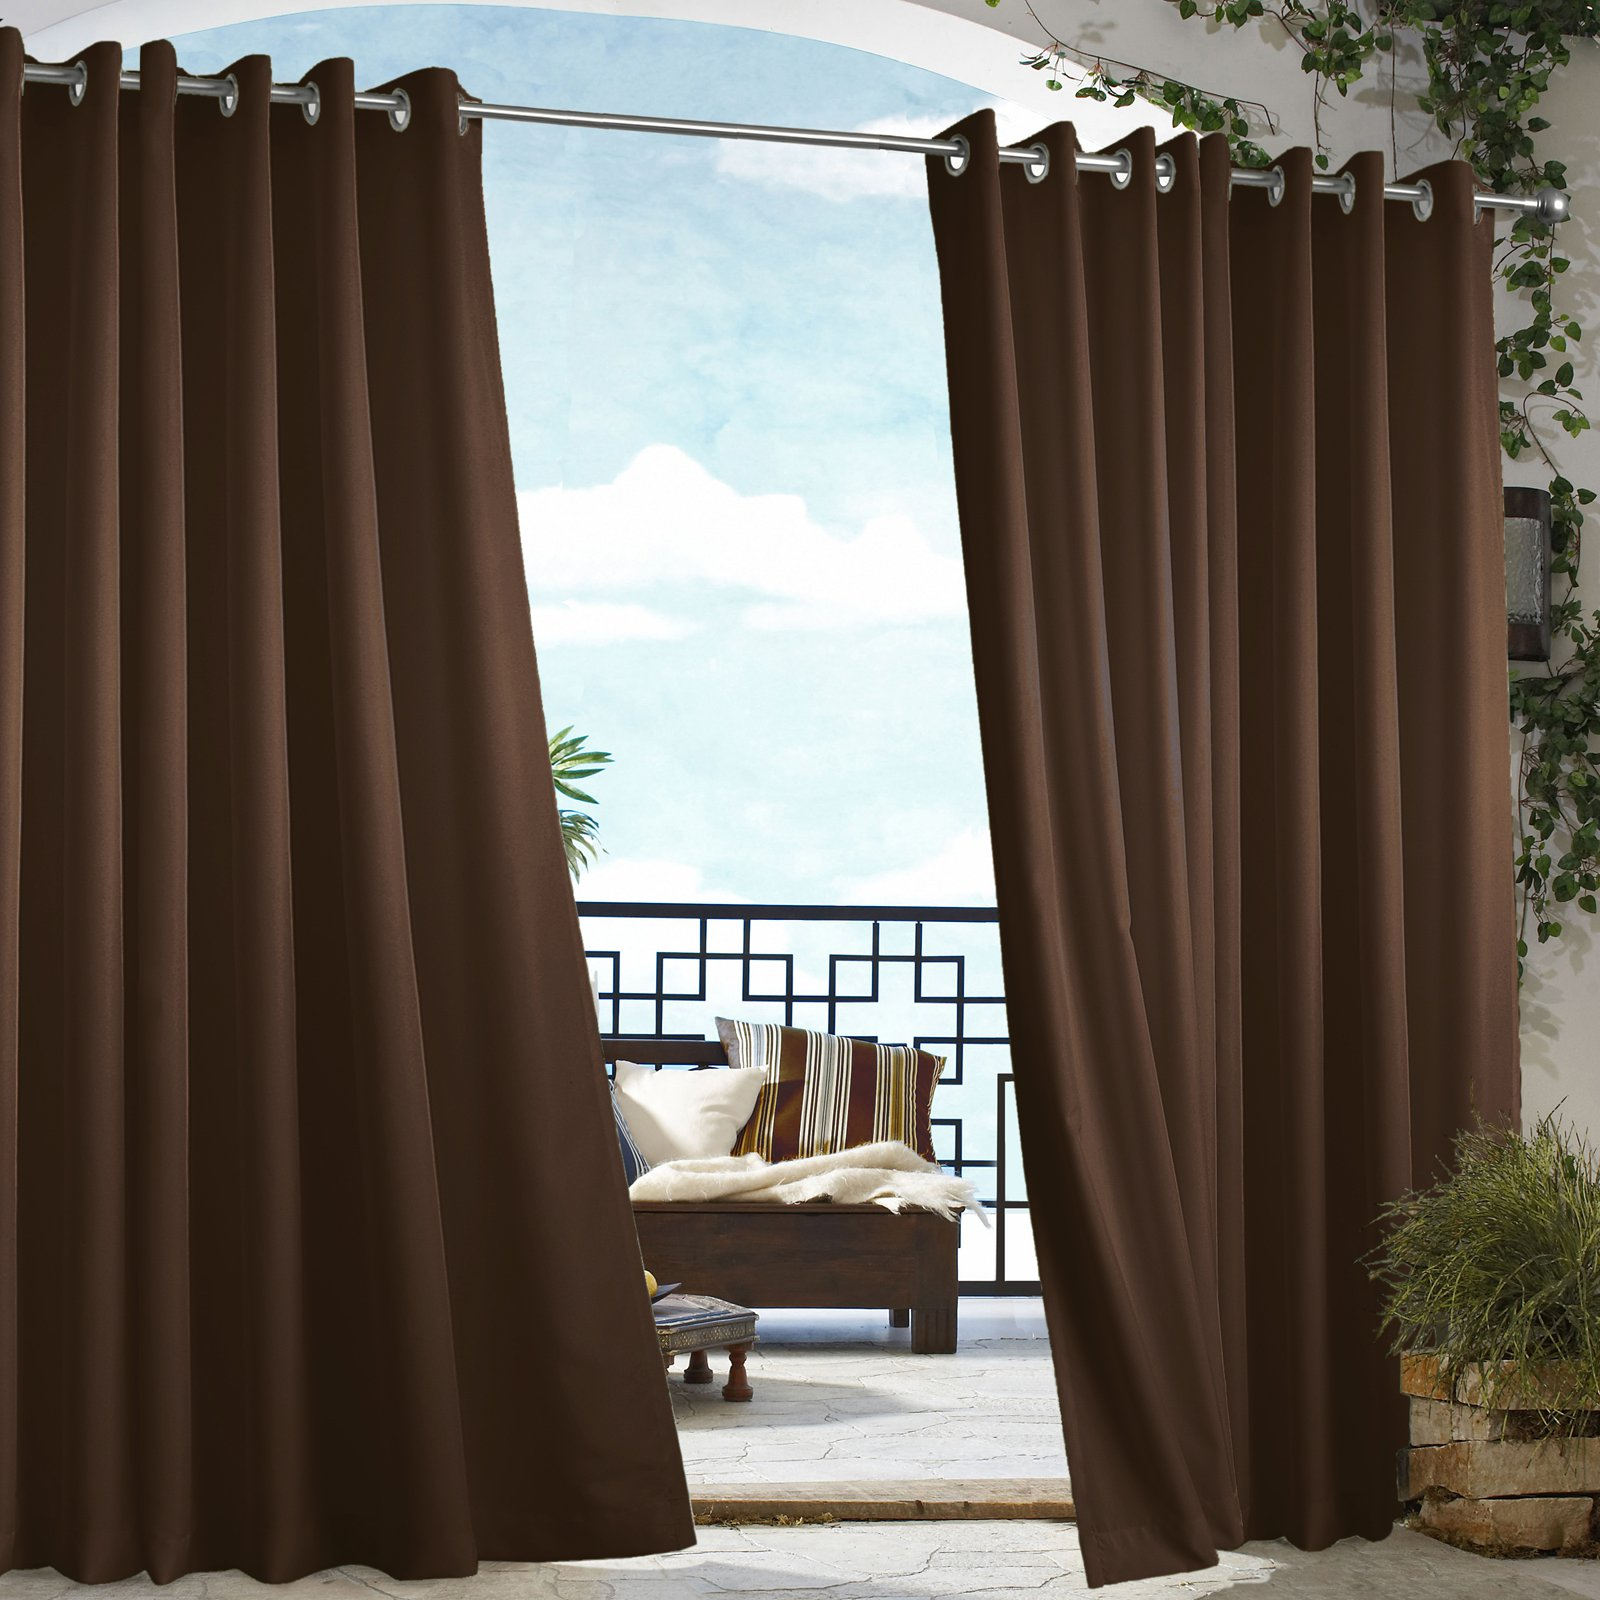 Sunbrella Curtains | Sunbrella Outdoor Chair Cushions | Sunbrella Curtain Panels